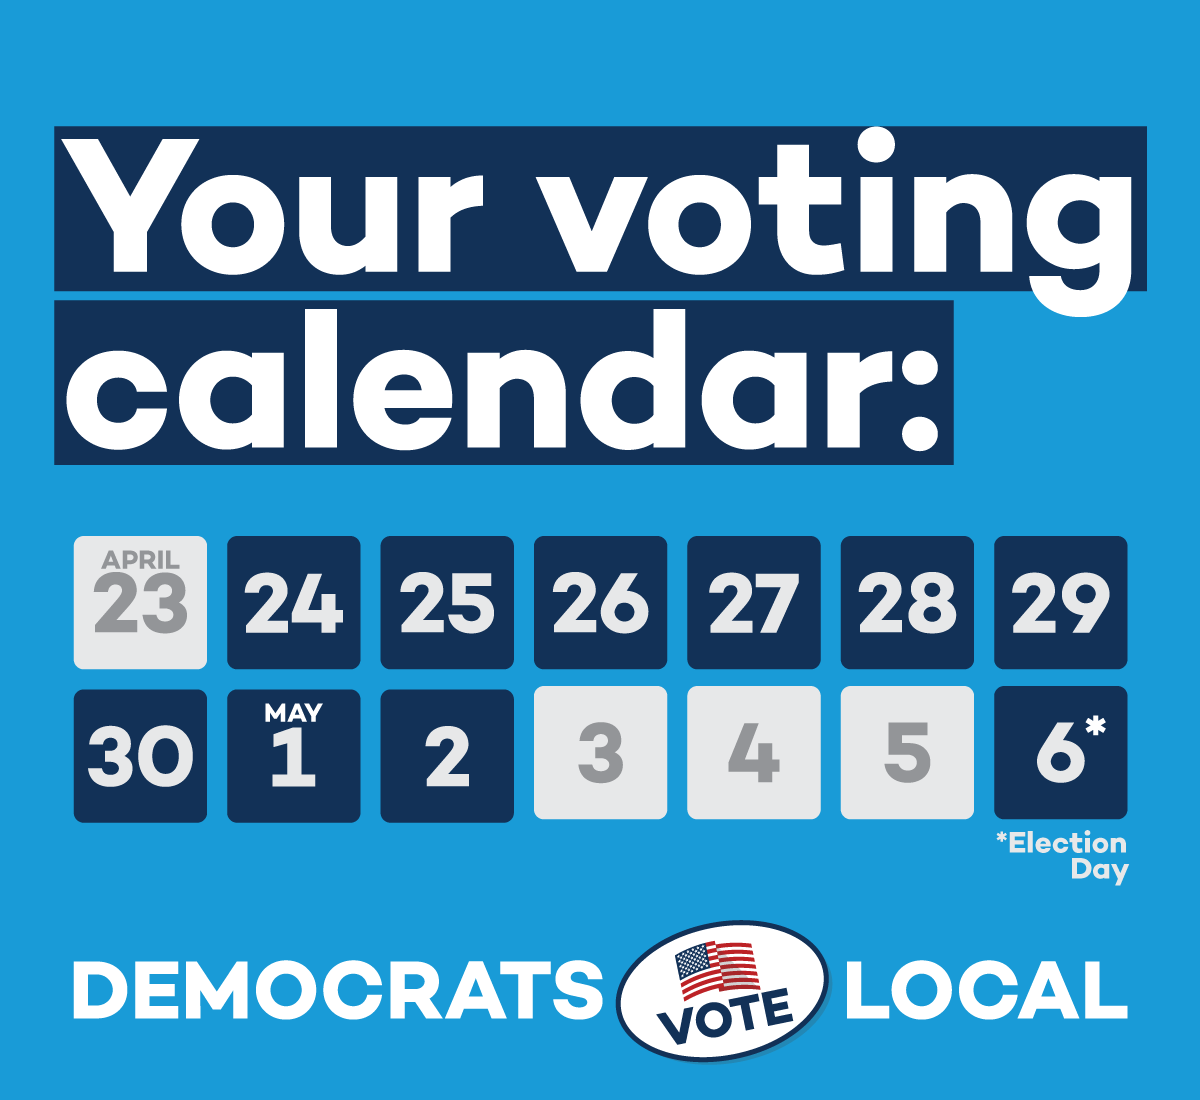 VotingCalendar_MAY6_Facebook.png